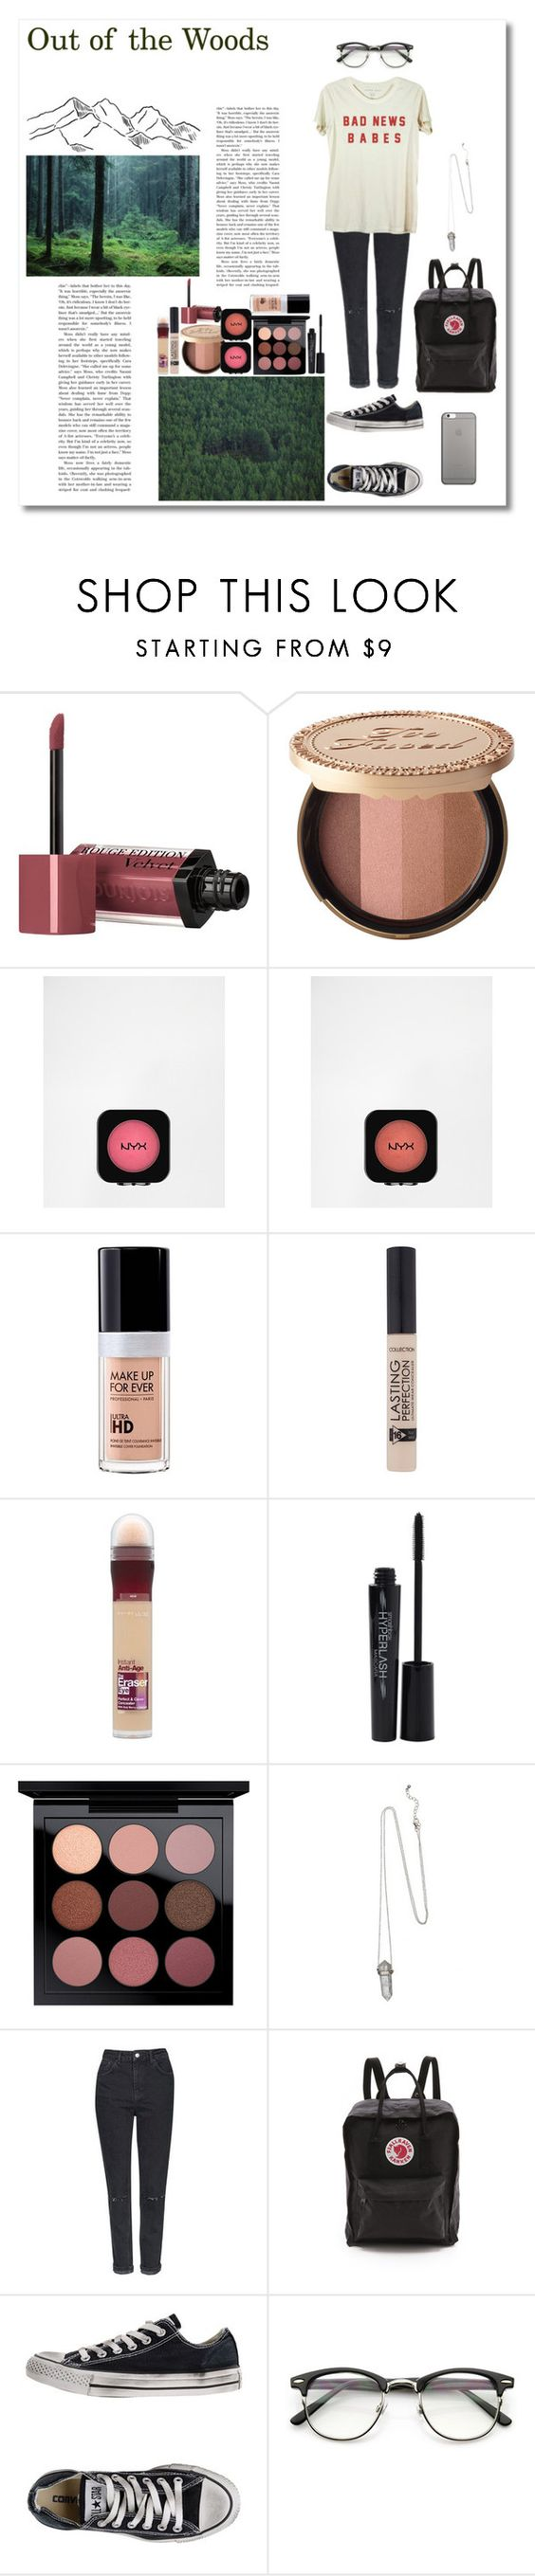 """Out of the Woods"" by silly-stegosaurus ❤ liked on Polyvore featuring Bourjois, Too Faced Cosmetics, NYX, MAKE UP FOR EVER, Maybelline, Smashbox, MAC Cosmetics, Topshop, Fjällräven and Converse"